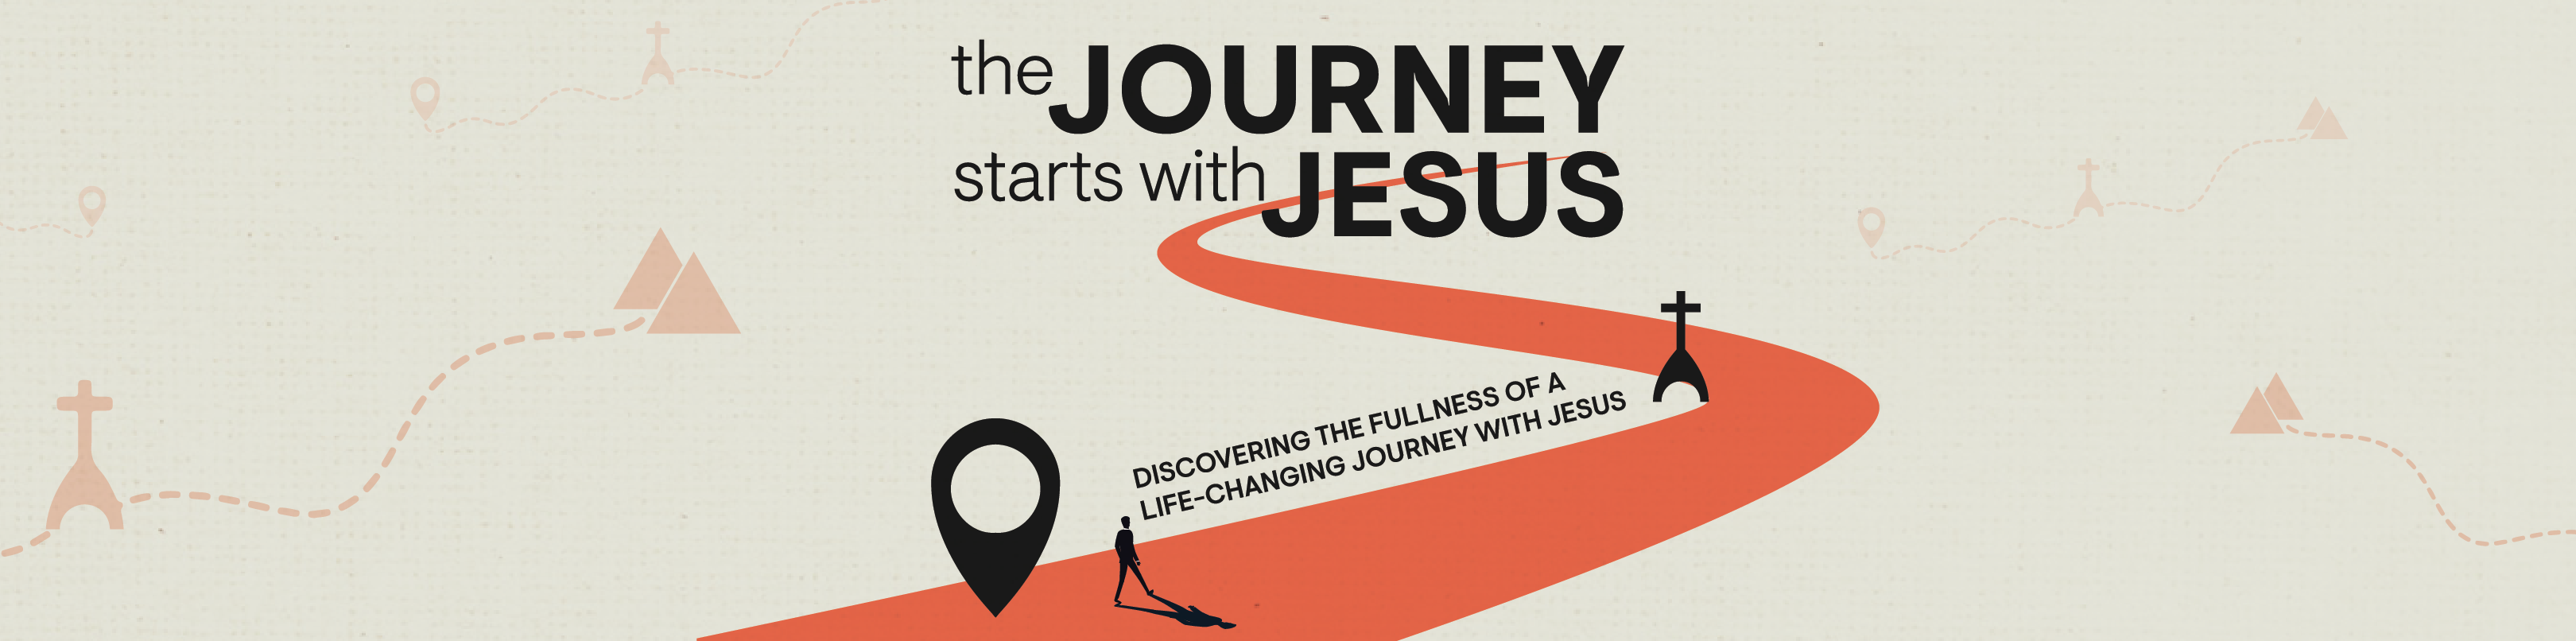 The Journey Starts With Jesus: Discovering the fullness of a life-changing journey with Jesus